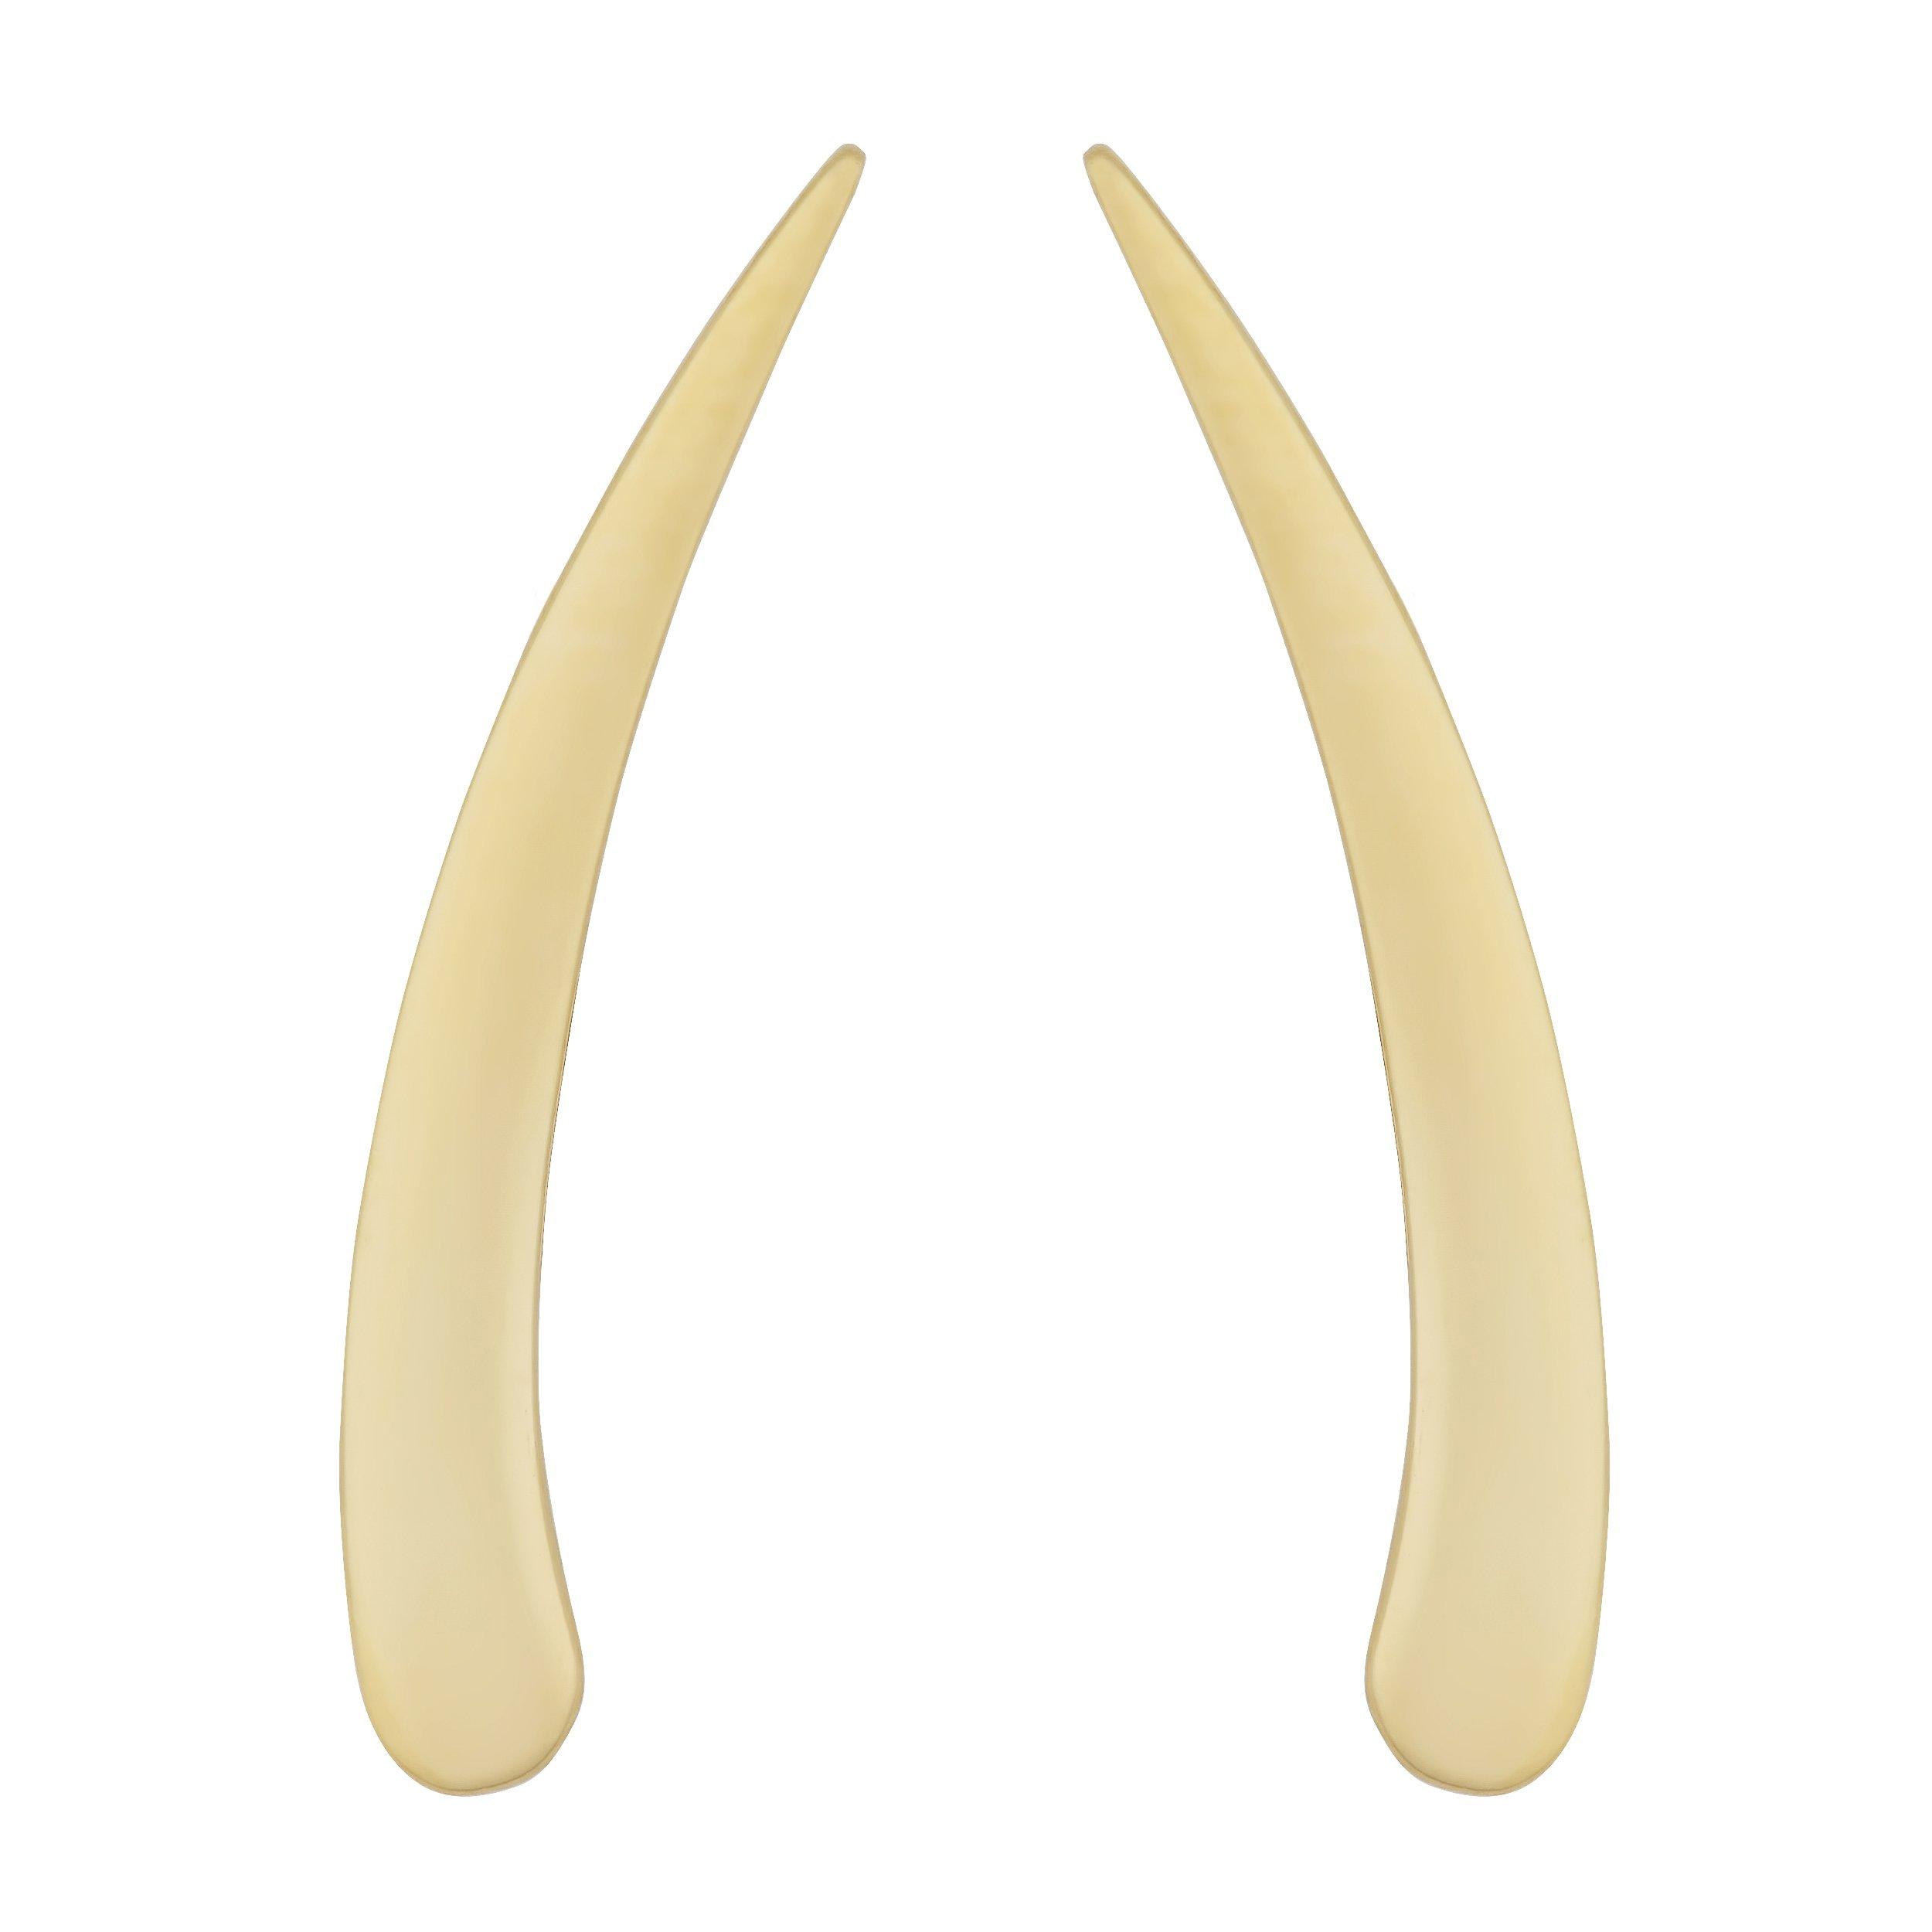 14k Yellow Gold Polished Tusk Climber Earrings by Kooljewelry